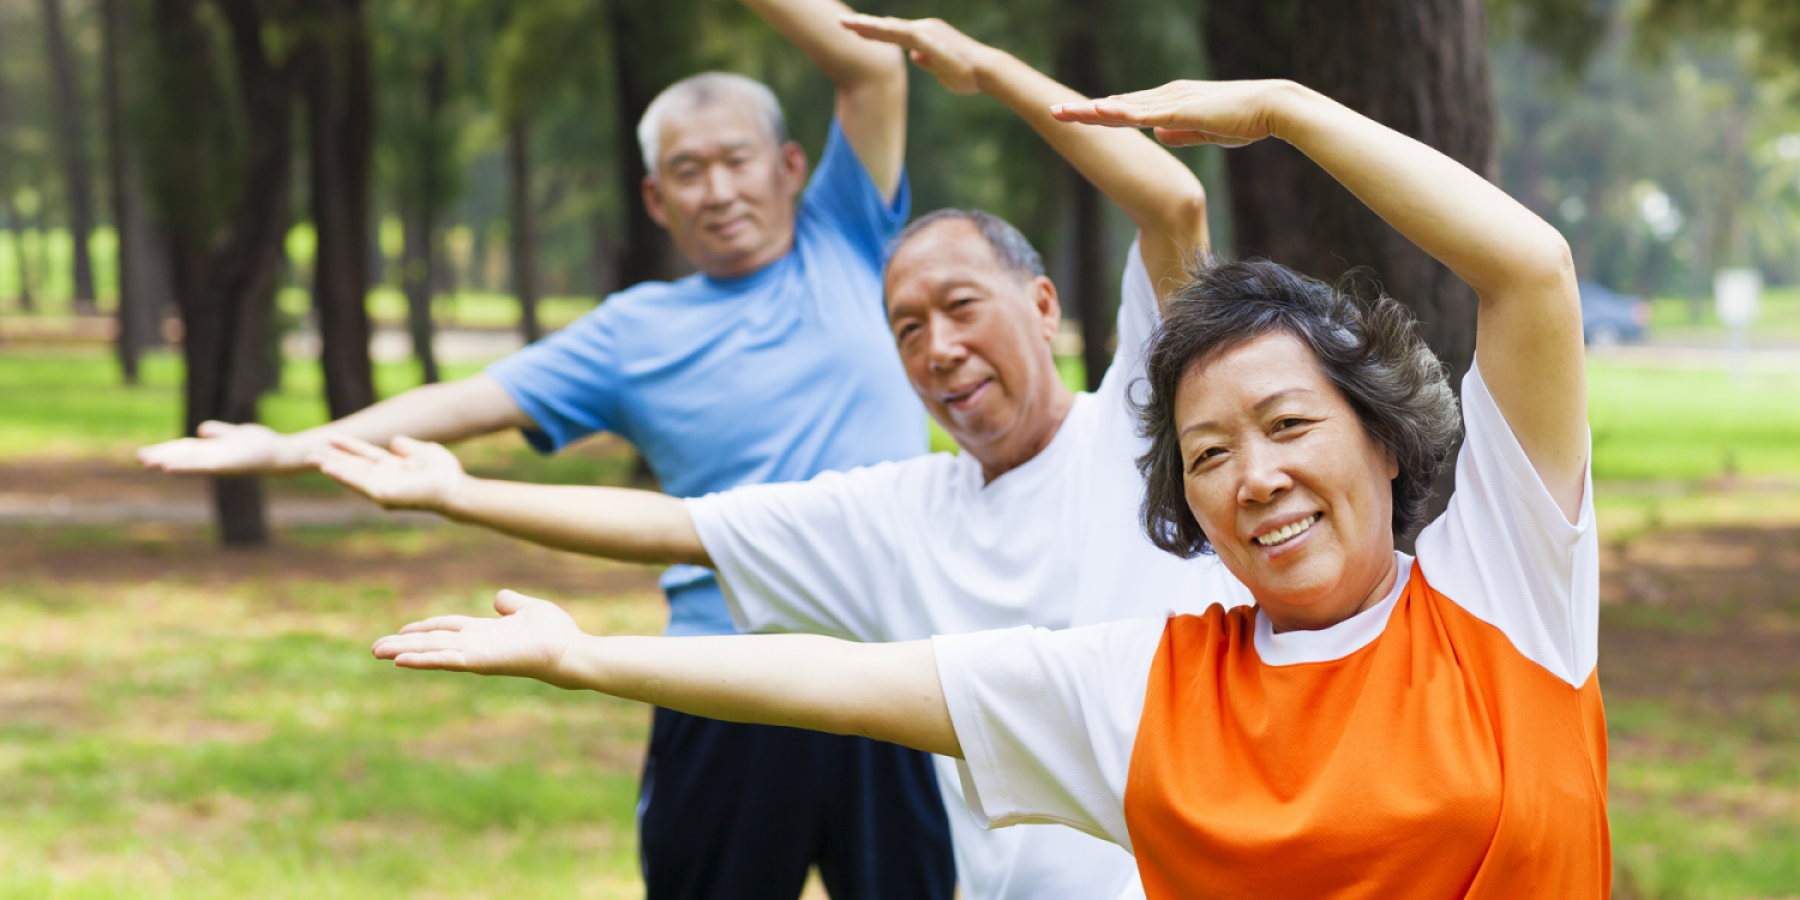 Physical activity in the park shutterstock_192276905